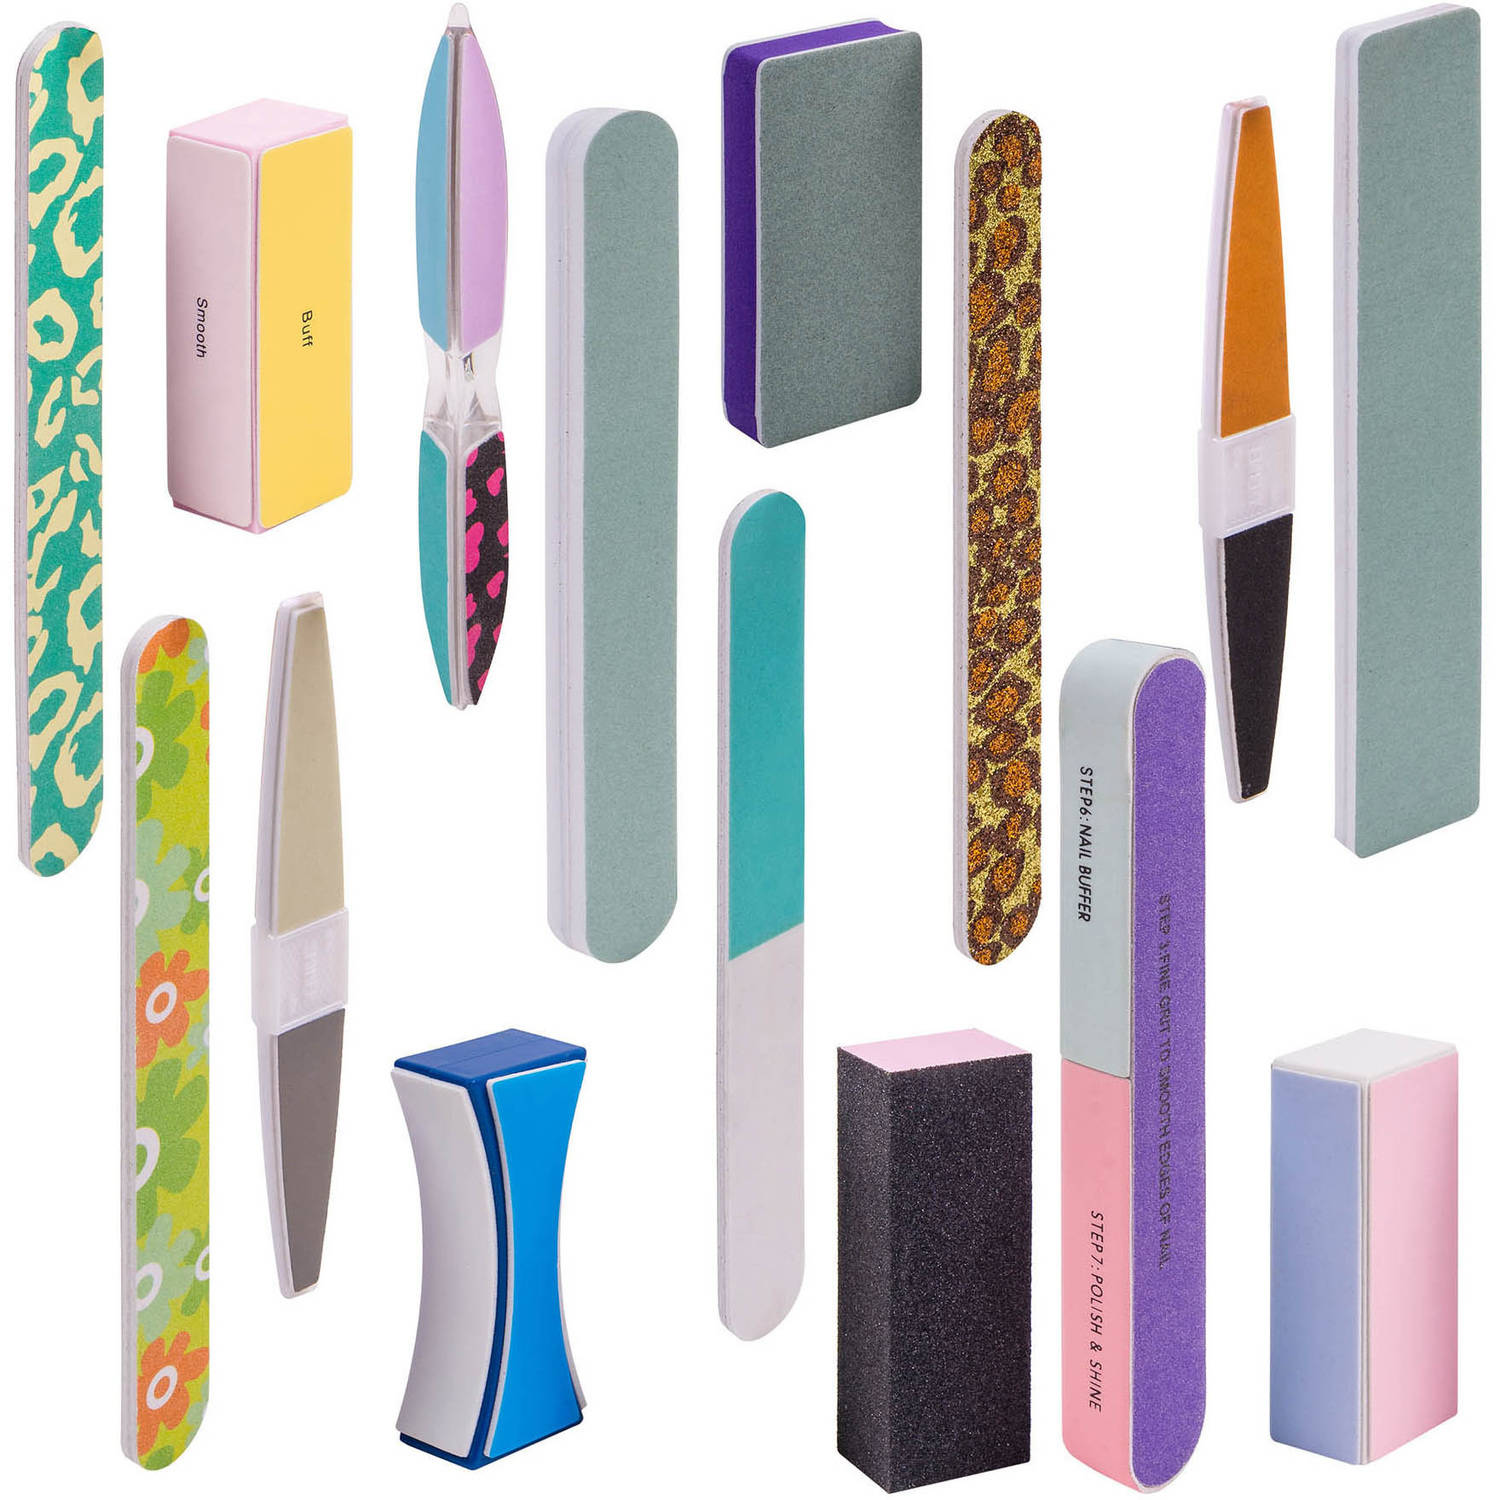 SHANY Trendy Styles Assorted Nail Buffers, Files & Blocks Set, 15 pc